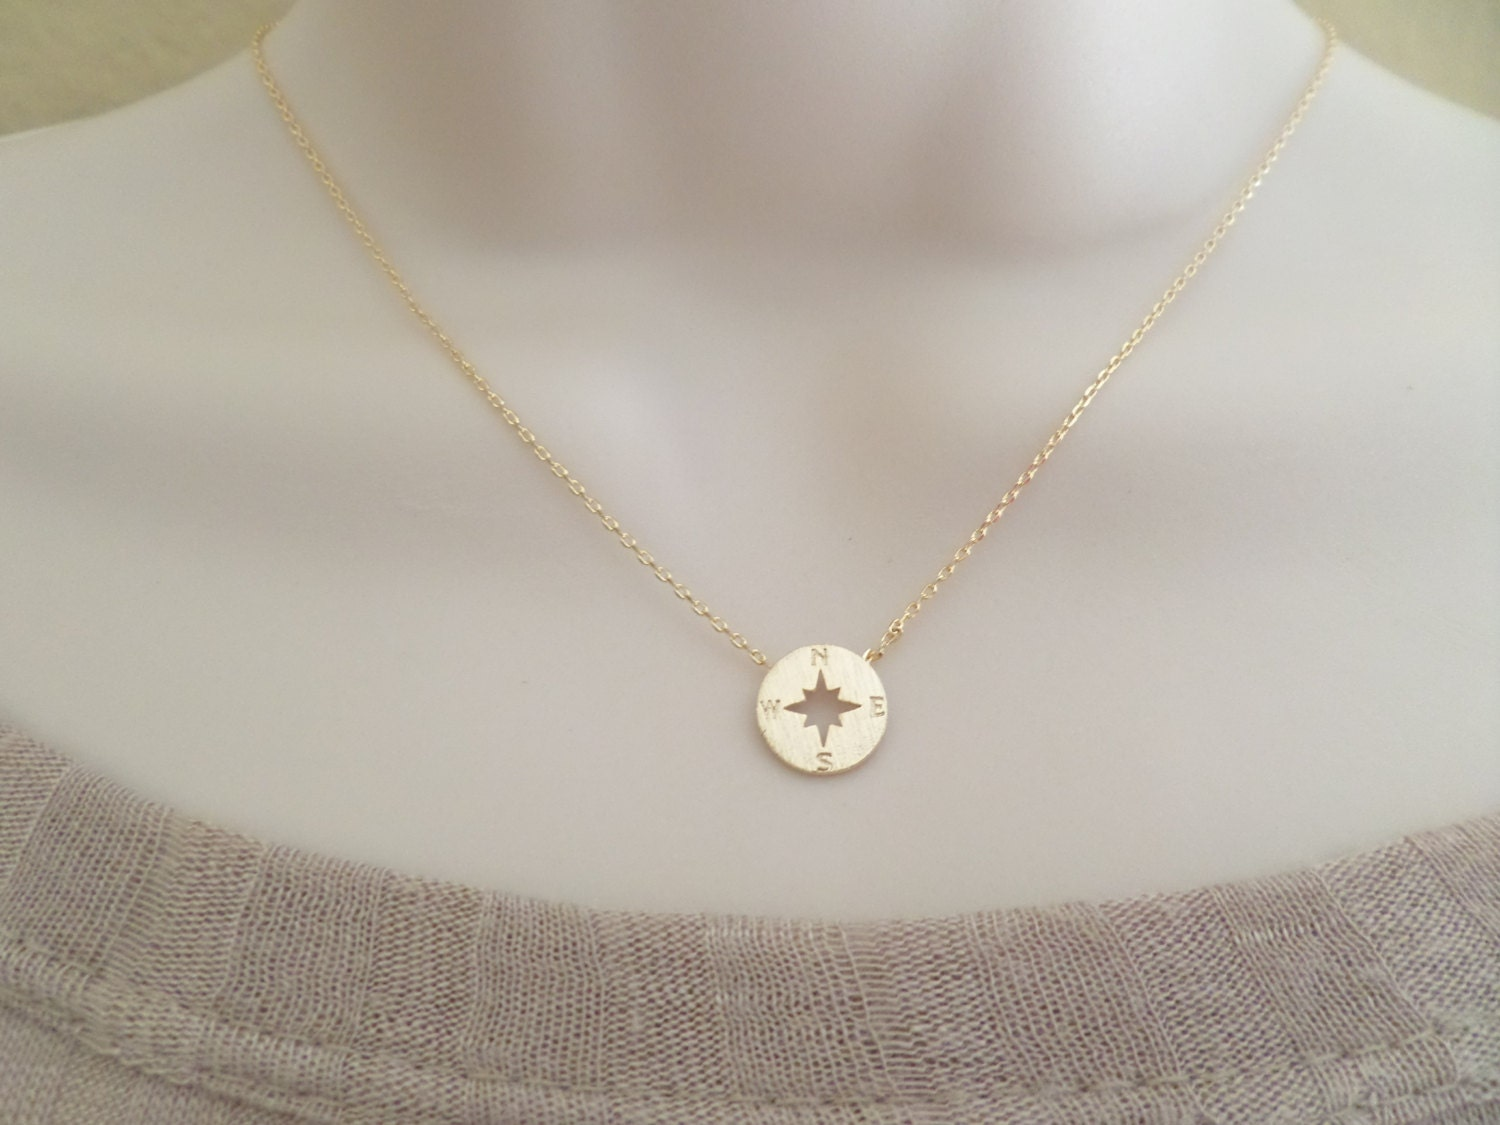 product necklace lauren op lc jsp star prd wid cutout conrad hei sharpen compass